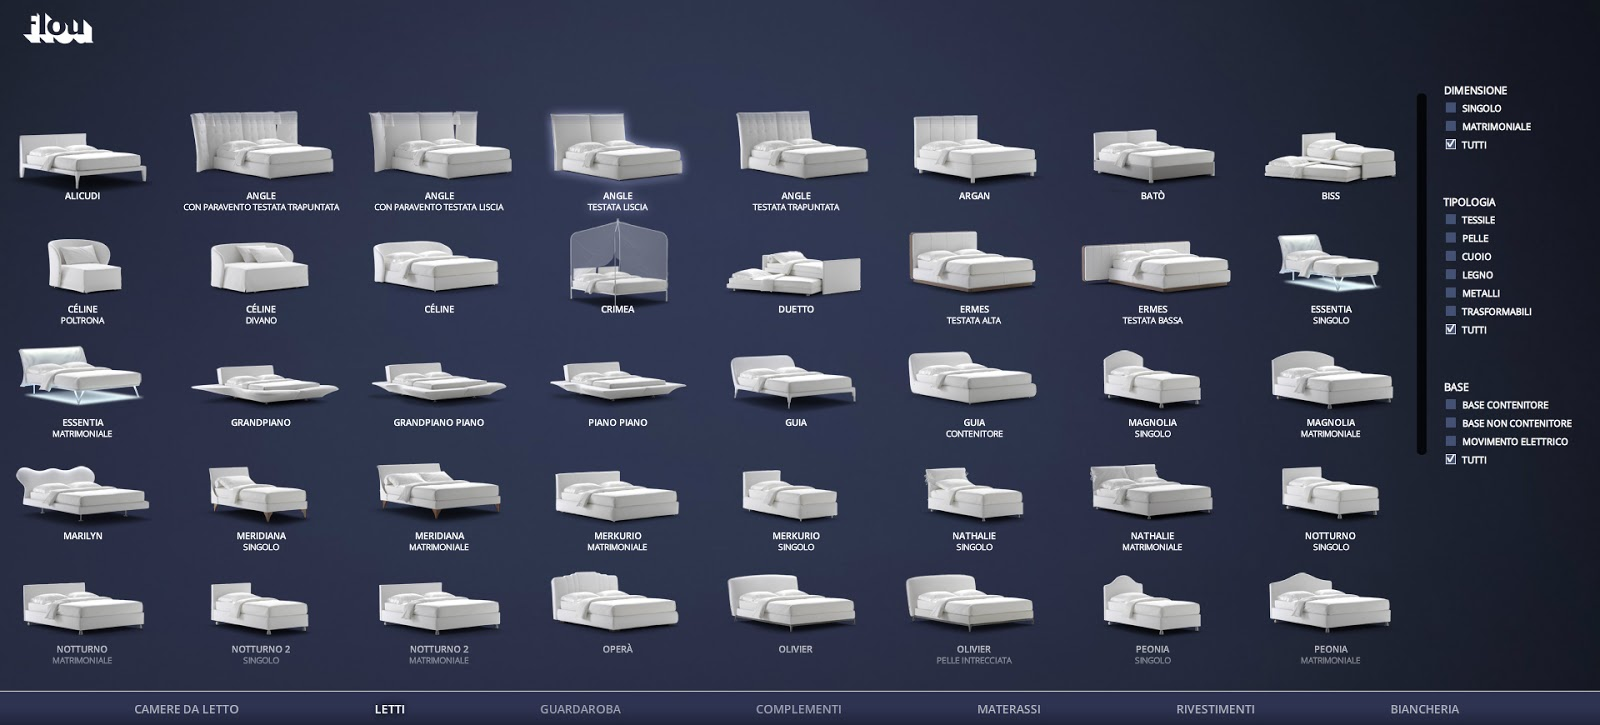 Maxwell 3d resources 3d models beds free download from for Decoration 3d model free download